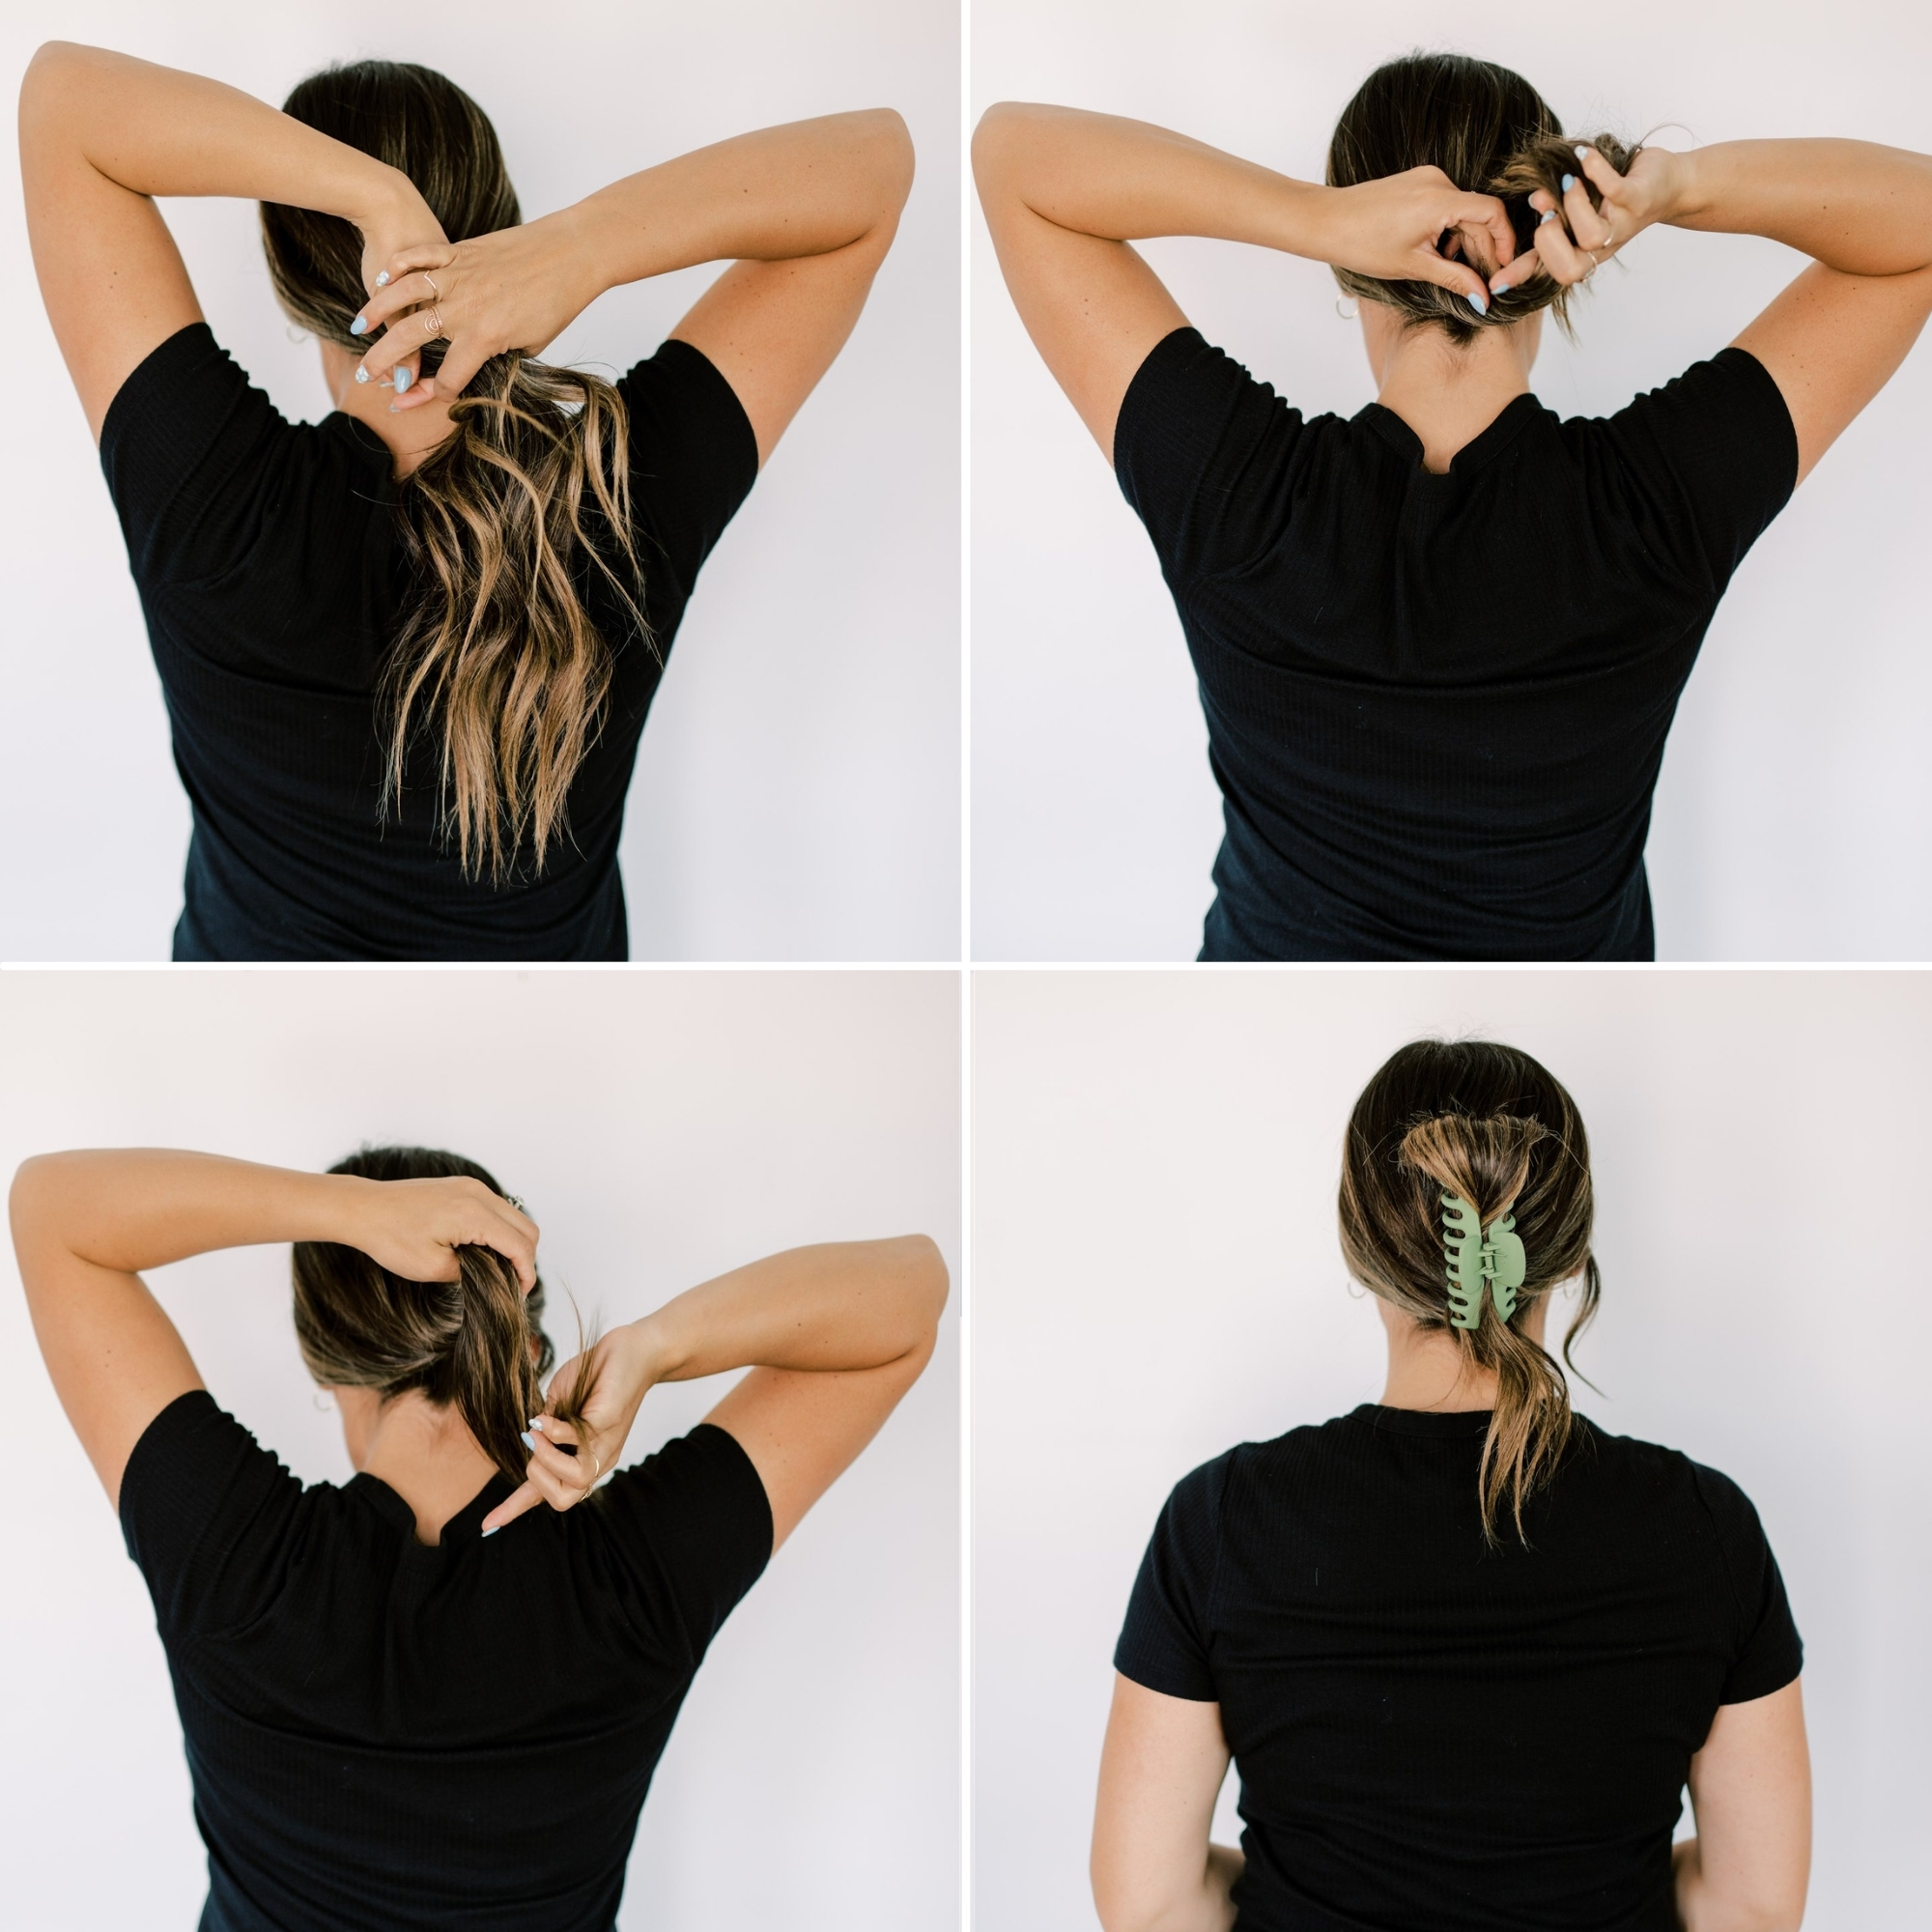 pull that hair back with a claw clip to be super trendy. www.twistmepretty.com